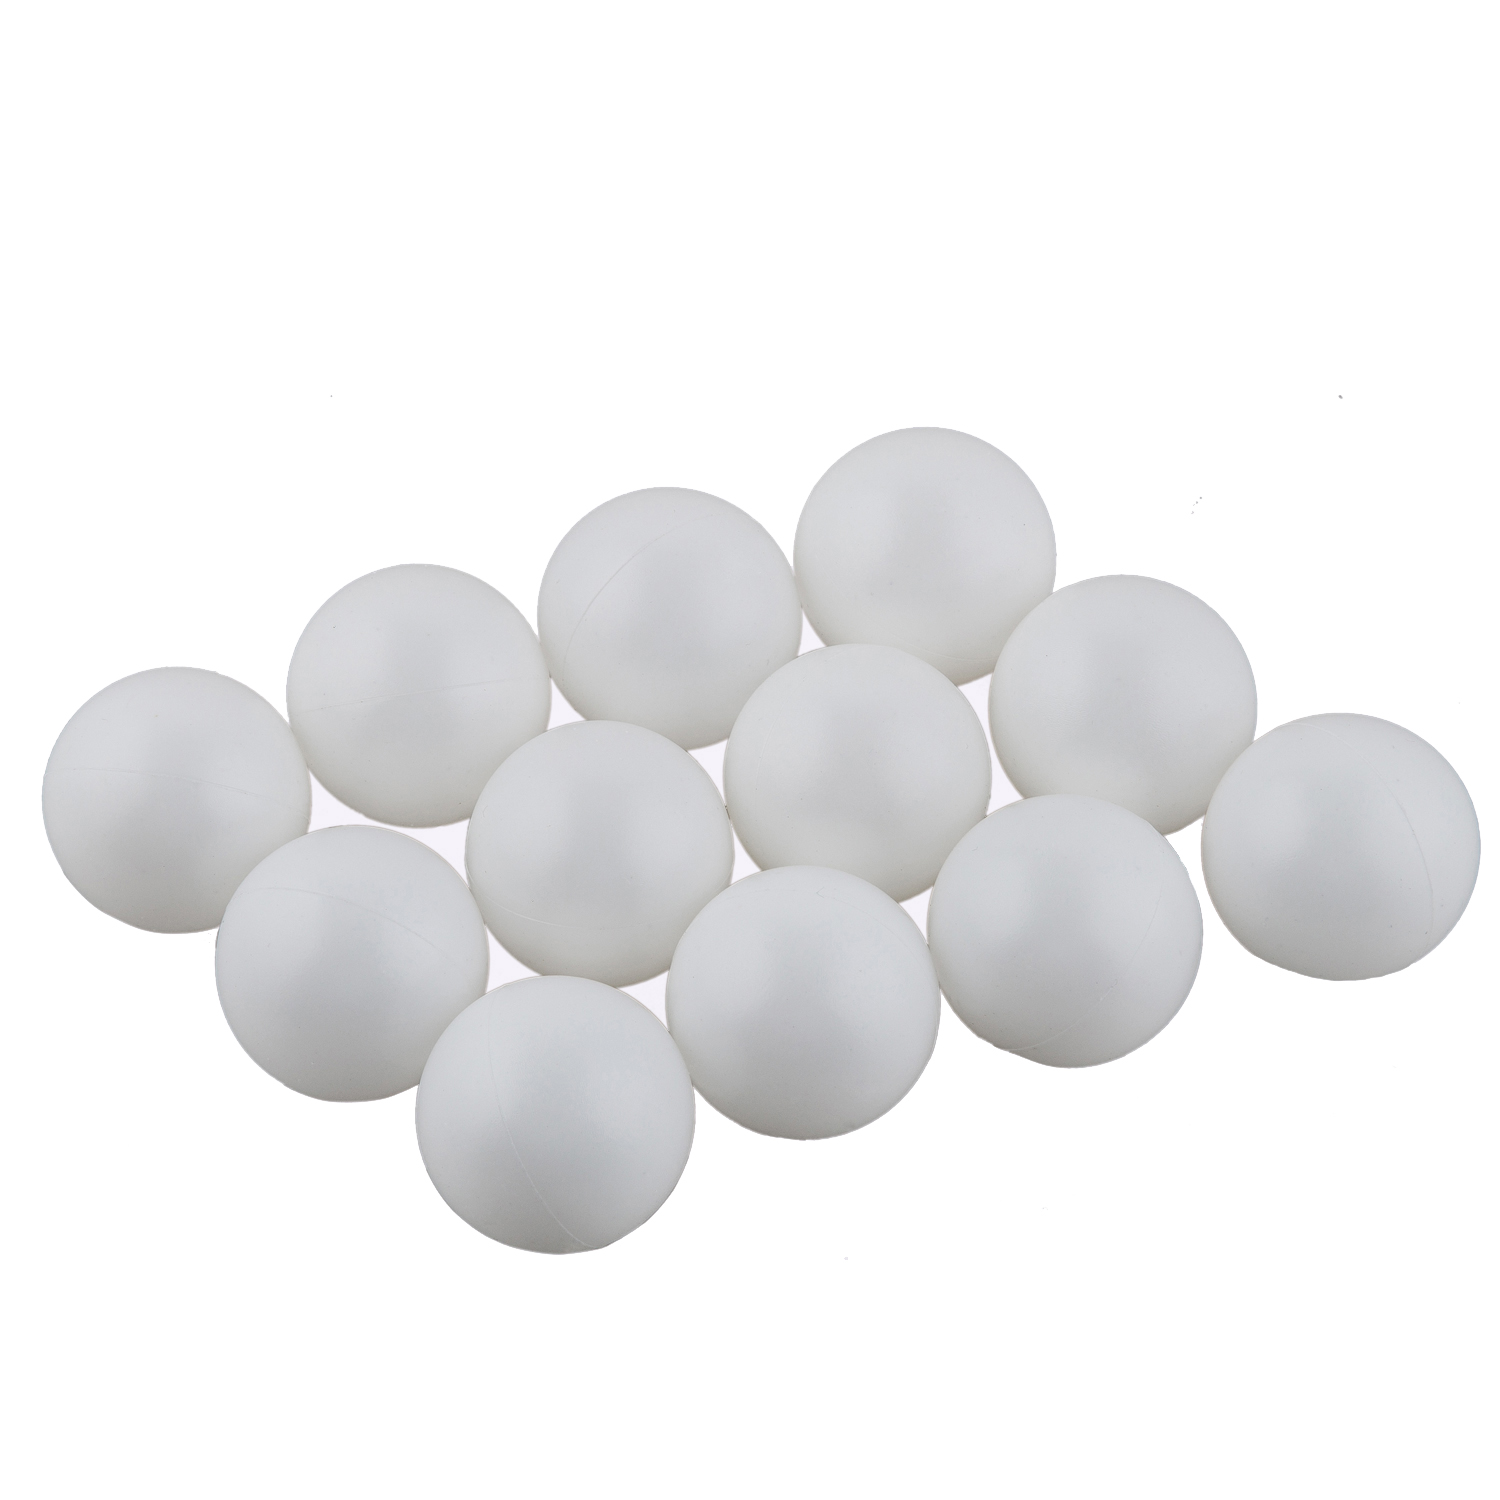 Pack Of 12 Plain White Unbranded Table Tennis Balls